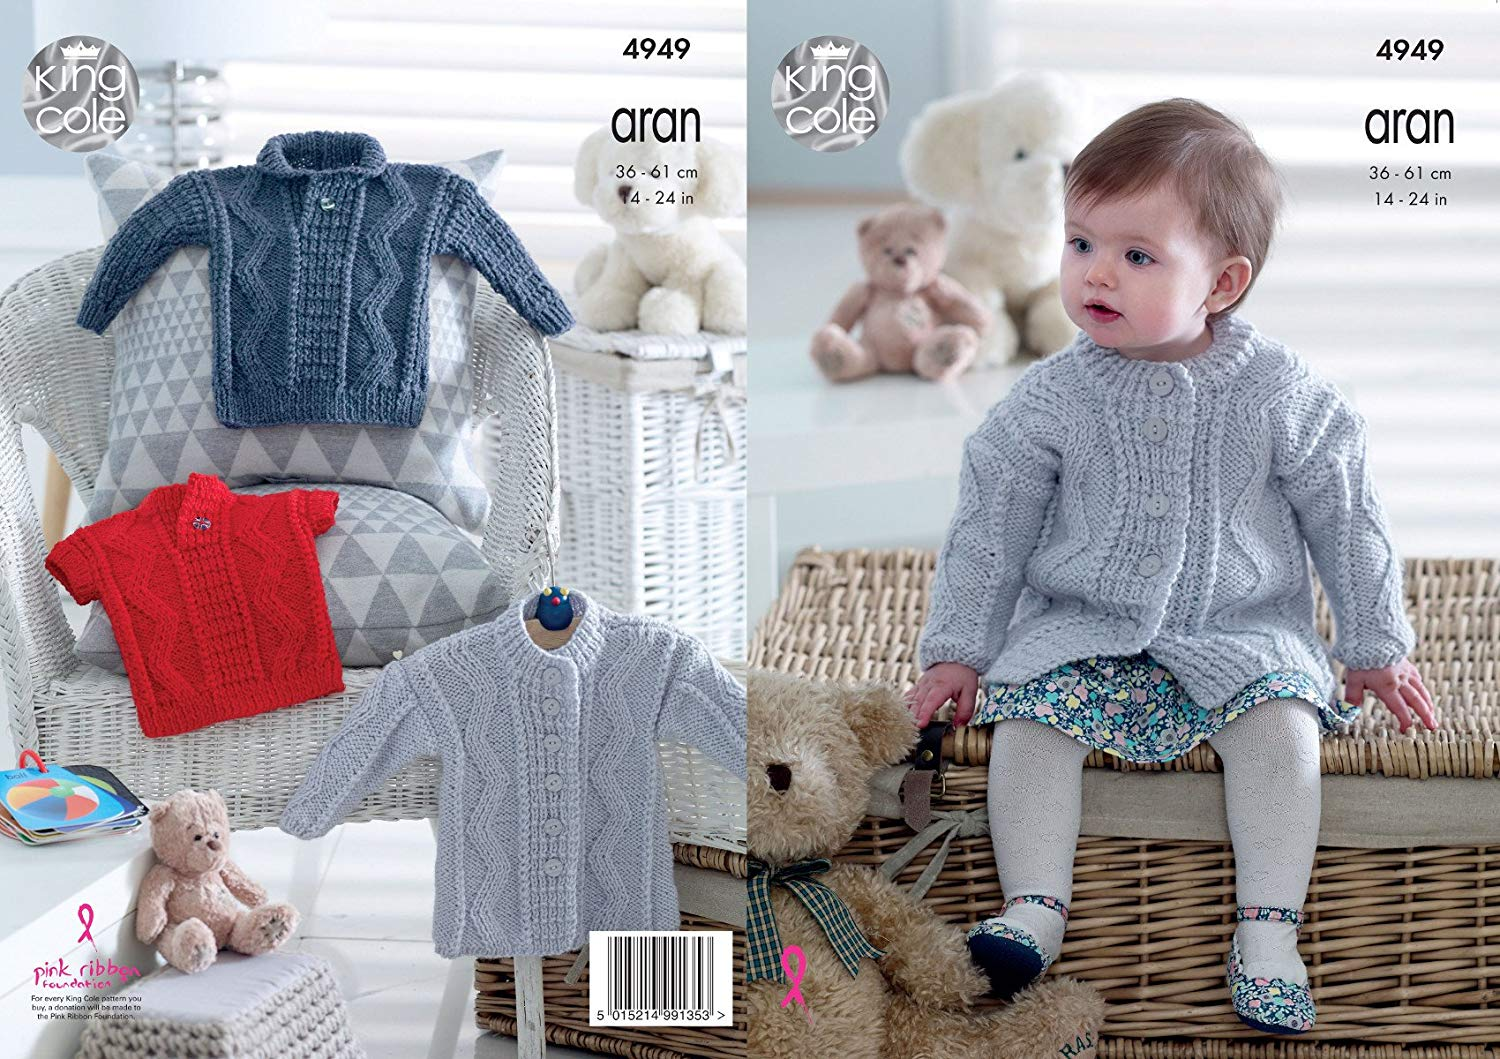 862462732 Get Quotations · King Cole Baby Aran Knitting Pattern for Cable Knit Coat  Sweater & Sleeveless Pullover (4949